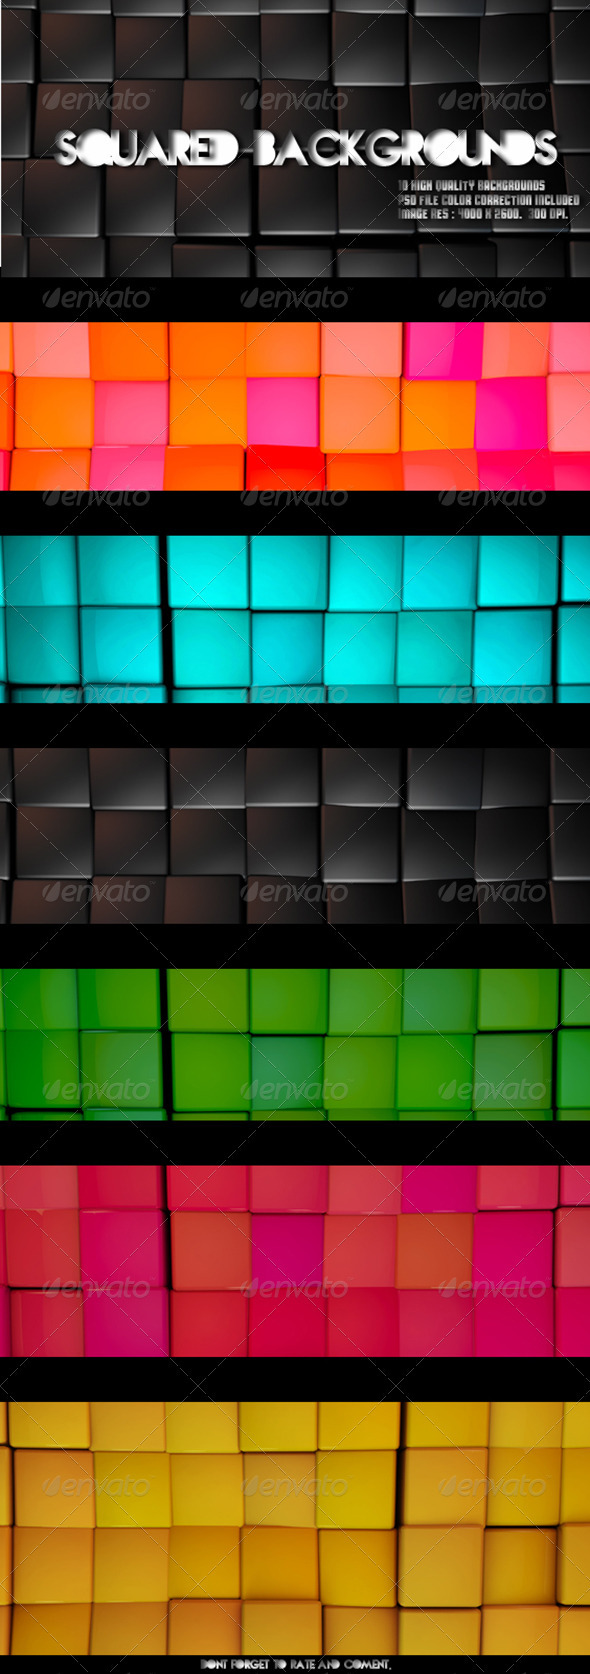 Square Backgrounds - 10 High Quality Backgrounds - 3D Backgrounds